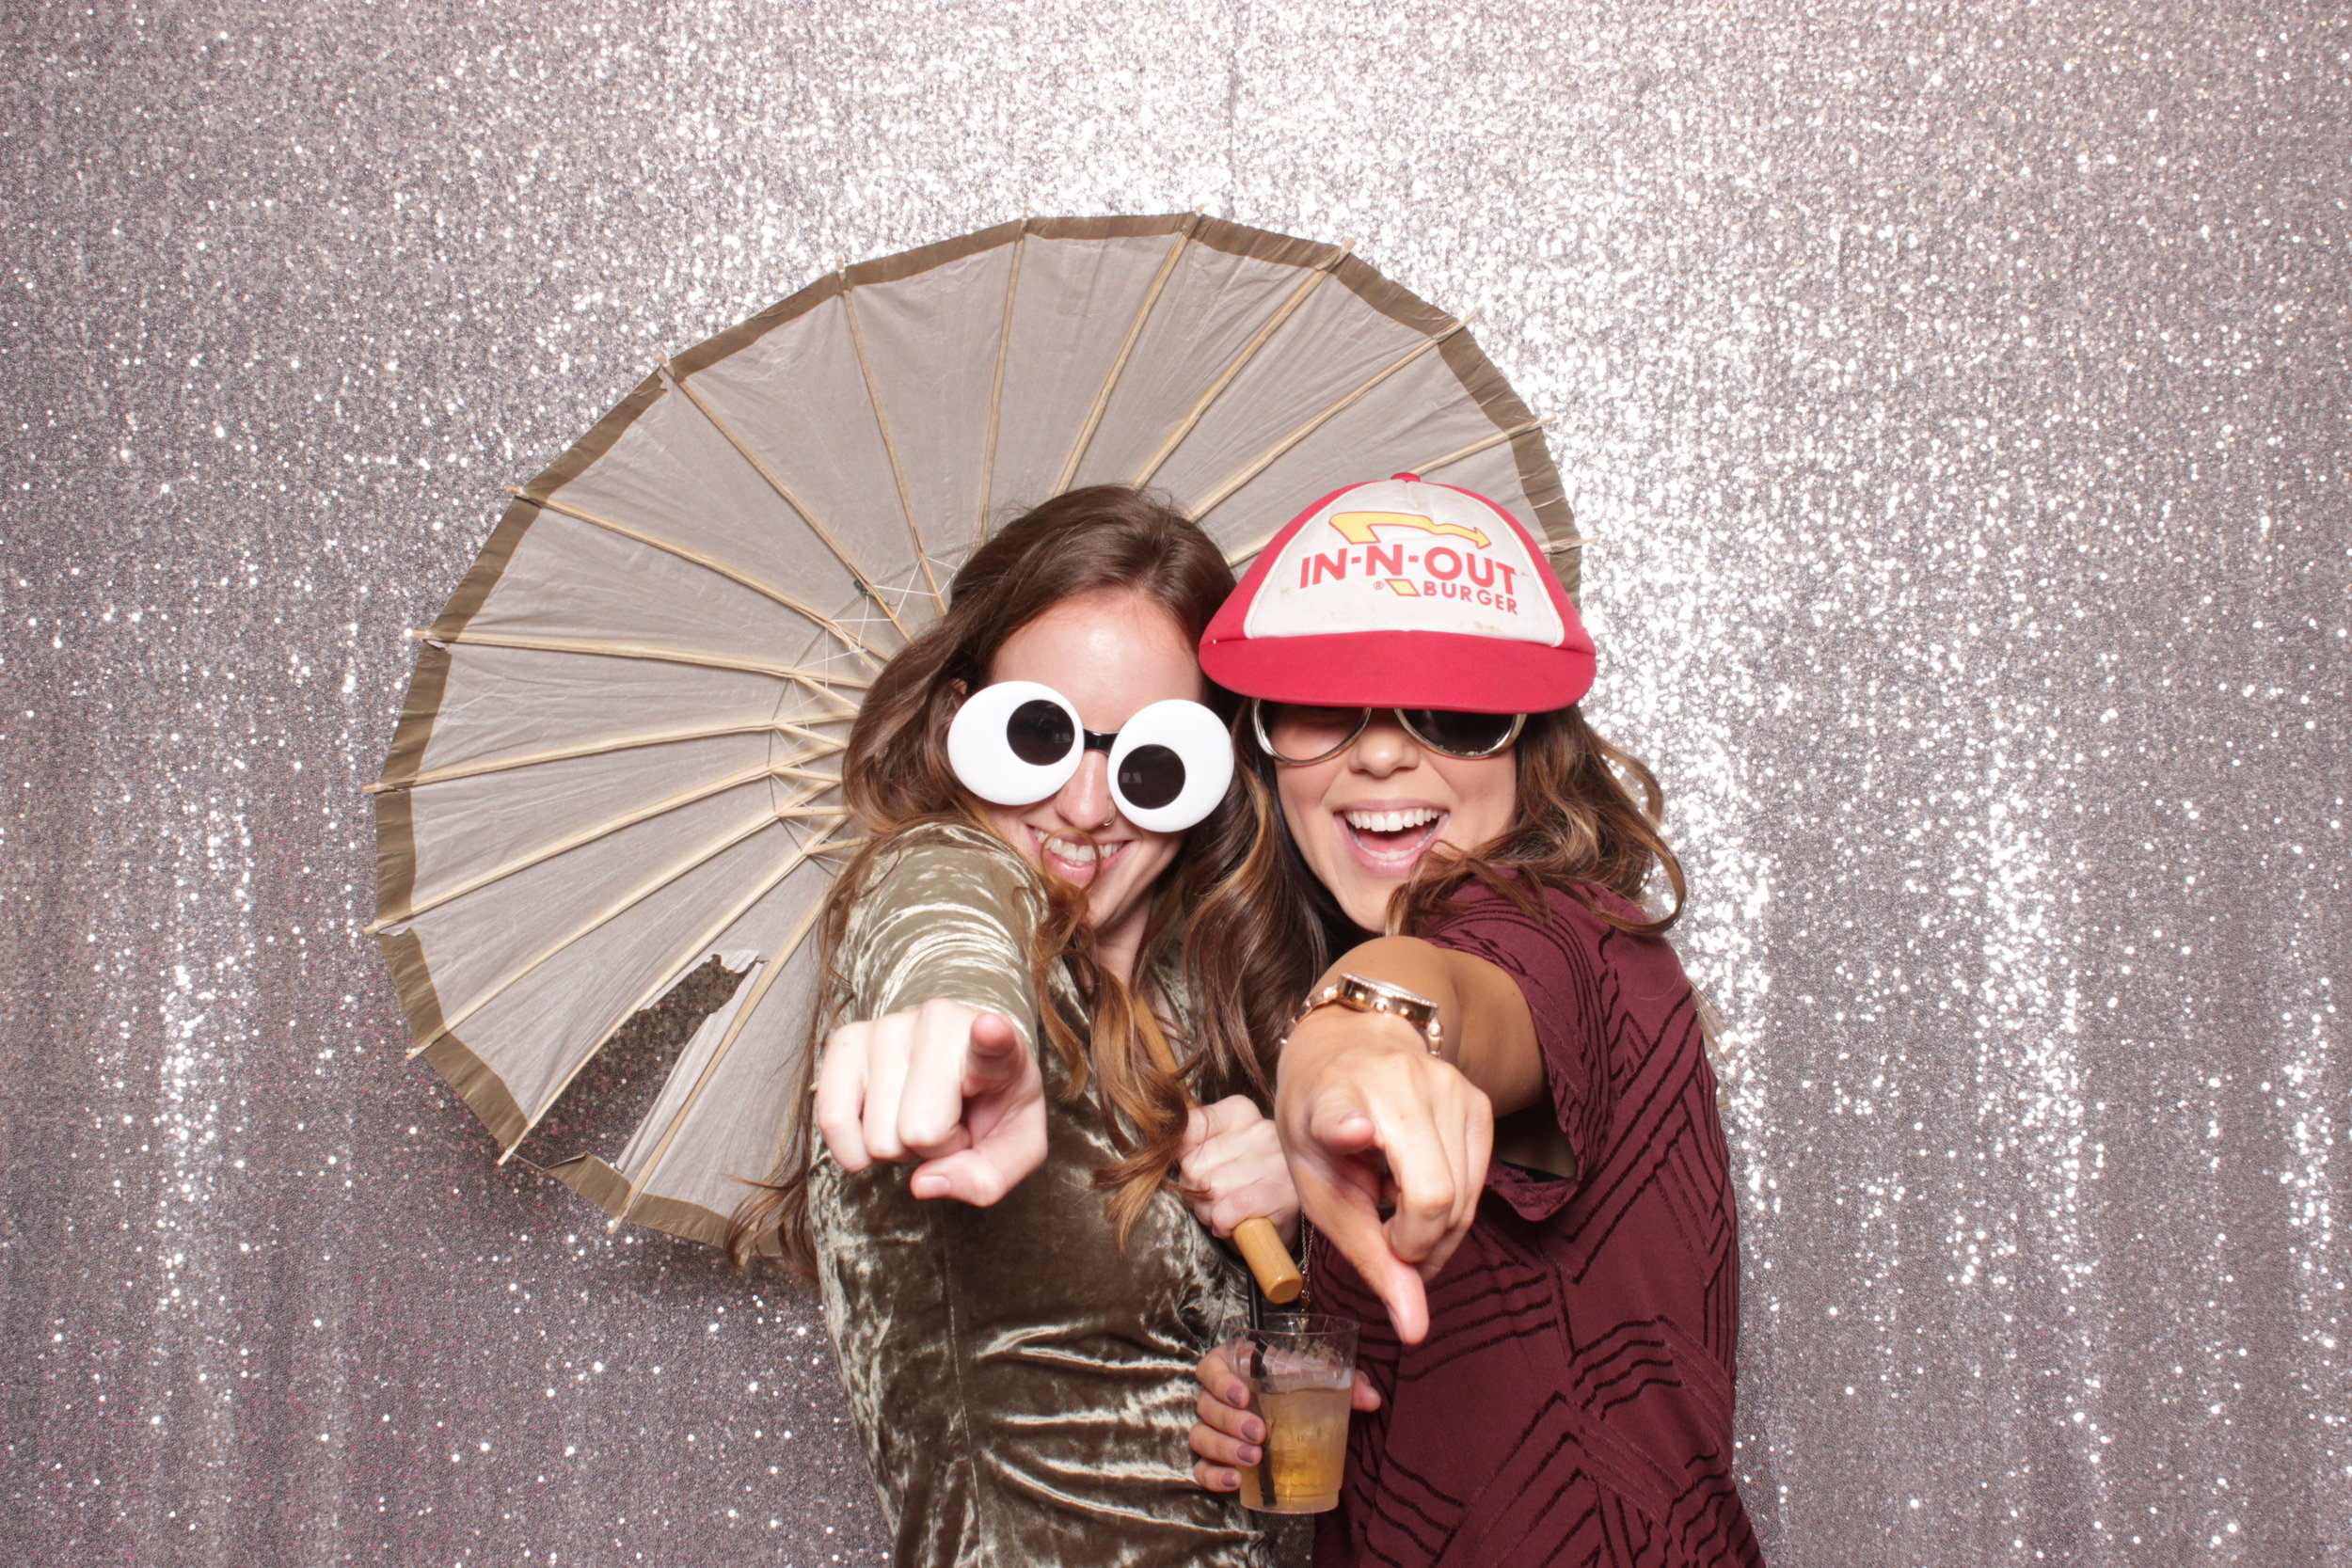 Chico-photo-booth-rental-costumes-included